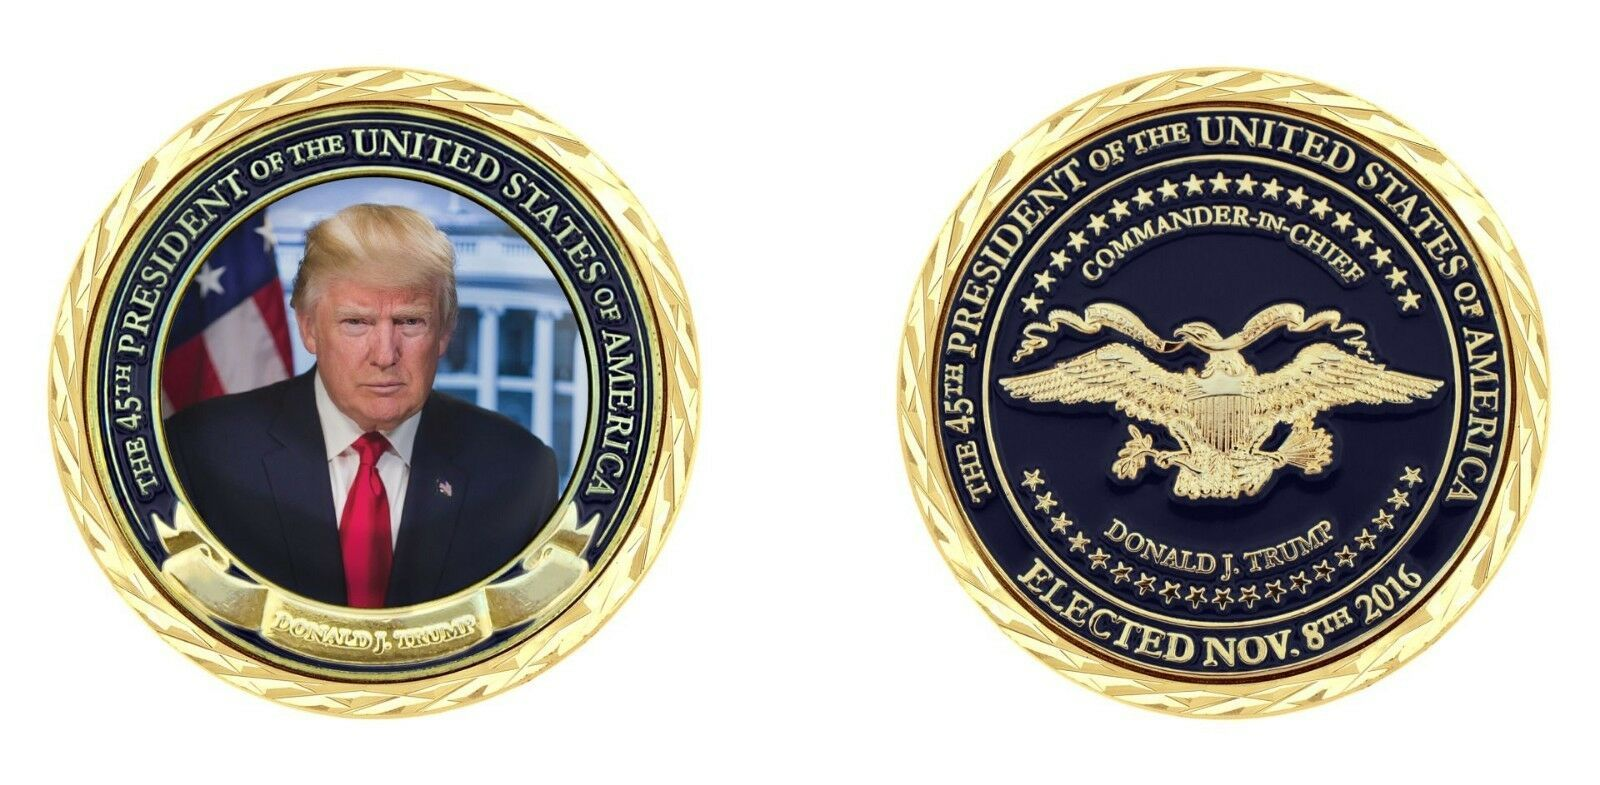 "45TH ELECTED PRESIDENT DONALD TRUMP COMMANDER IN CHIEF 1.75"" CHALLENGE COIN"